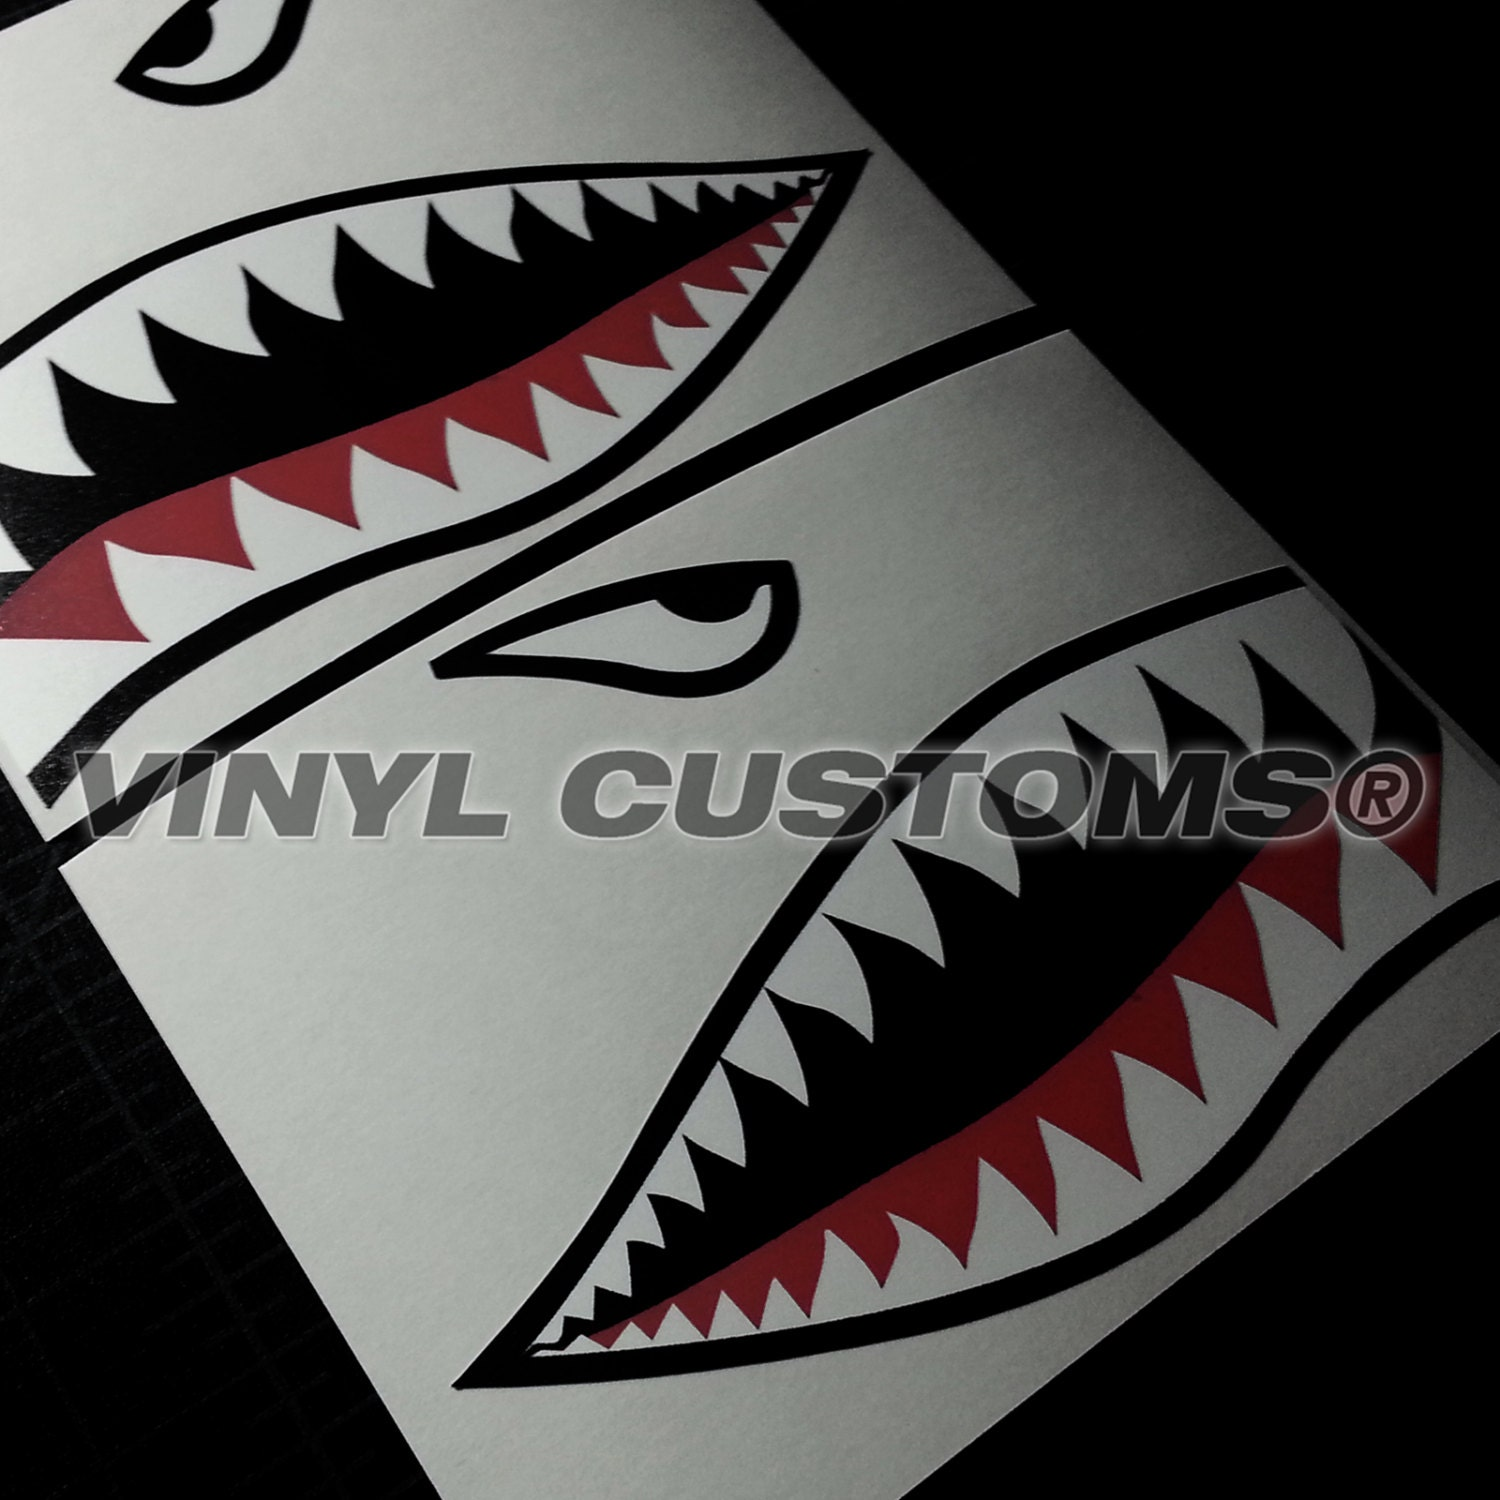 Flying Tigers Vinyl Decal Sticker Squalo Denti Hobby Ww2